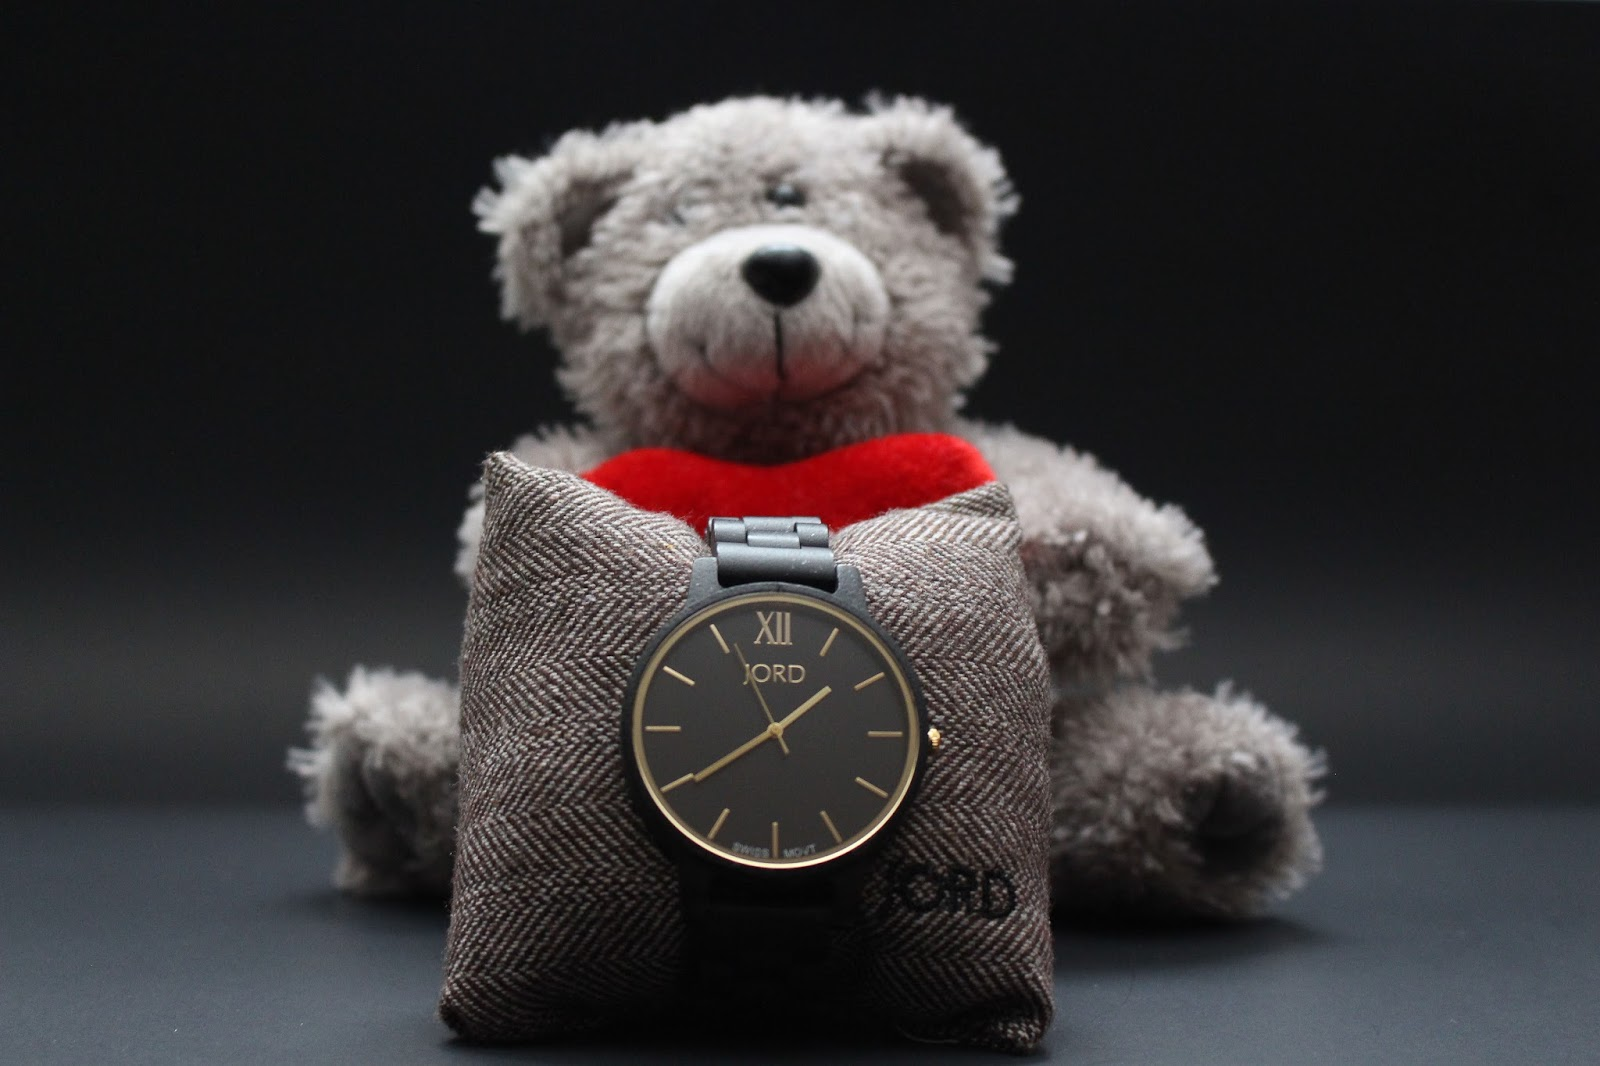 jord, wood watch, jord wood watches, frankie series, valentine's day gifts, men's watch, women's watch